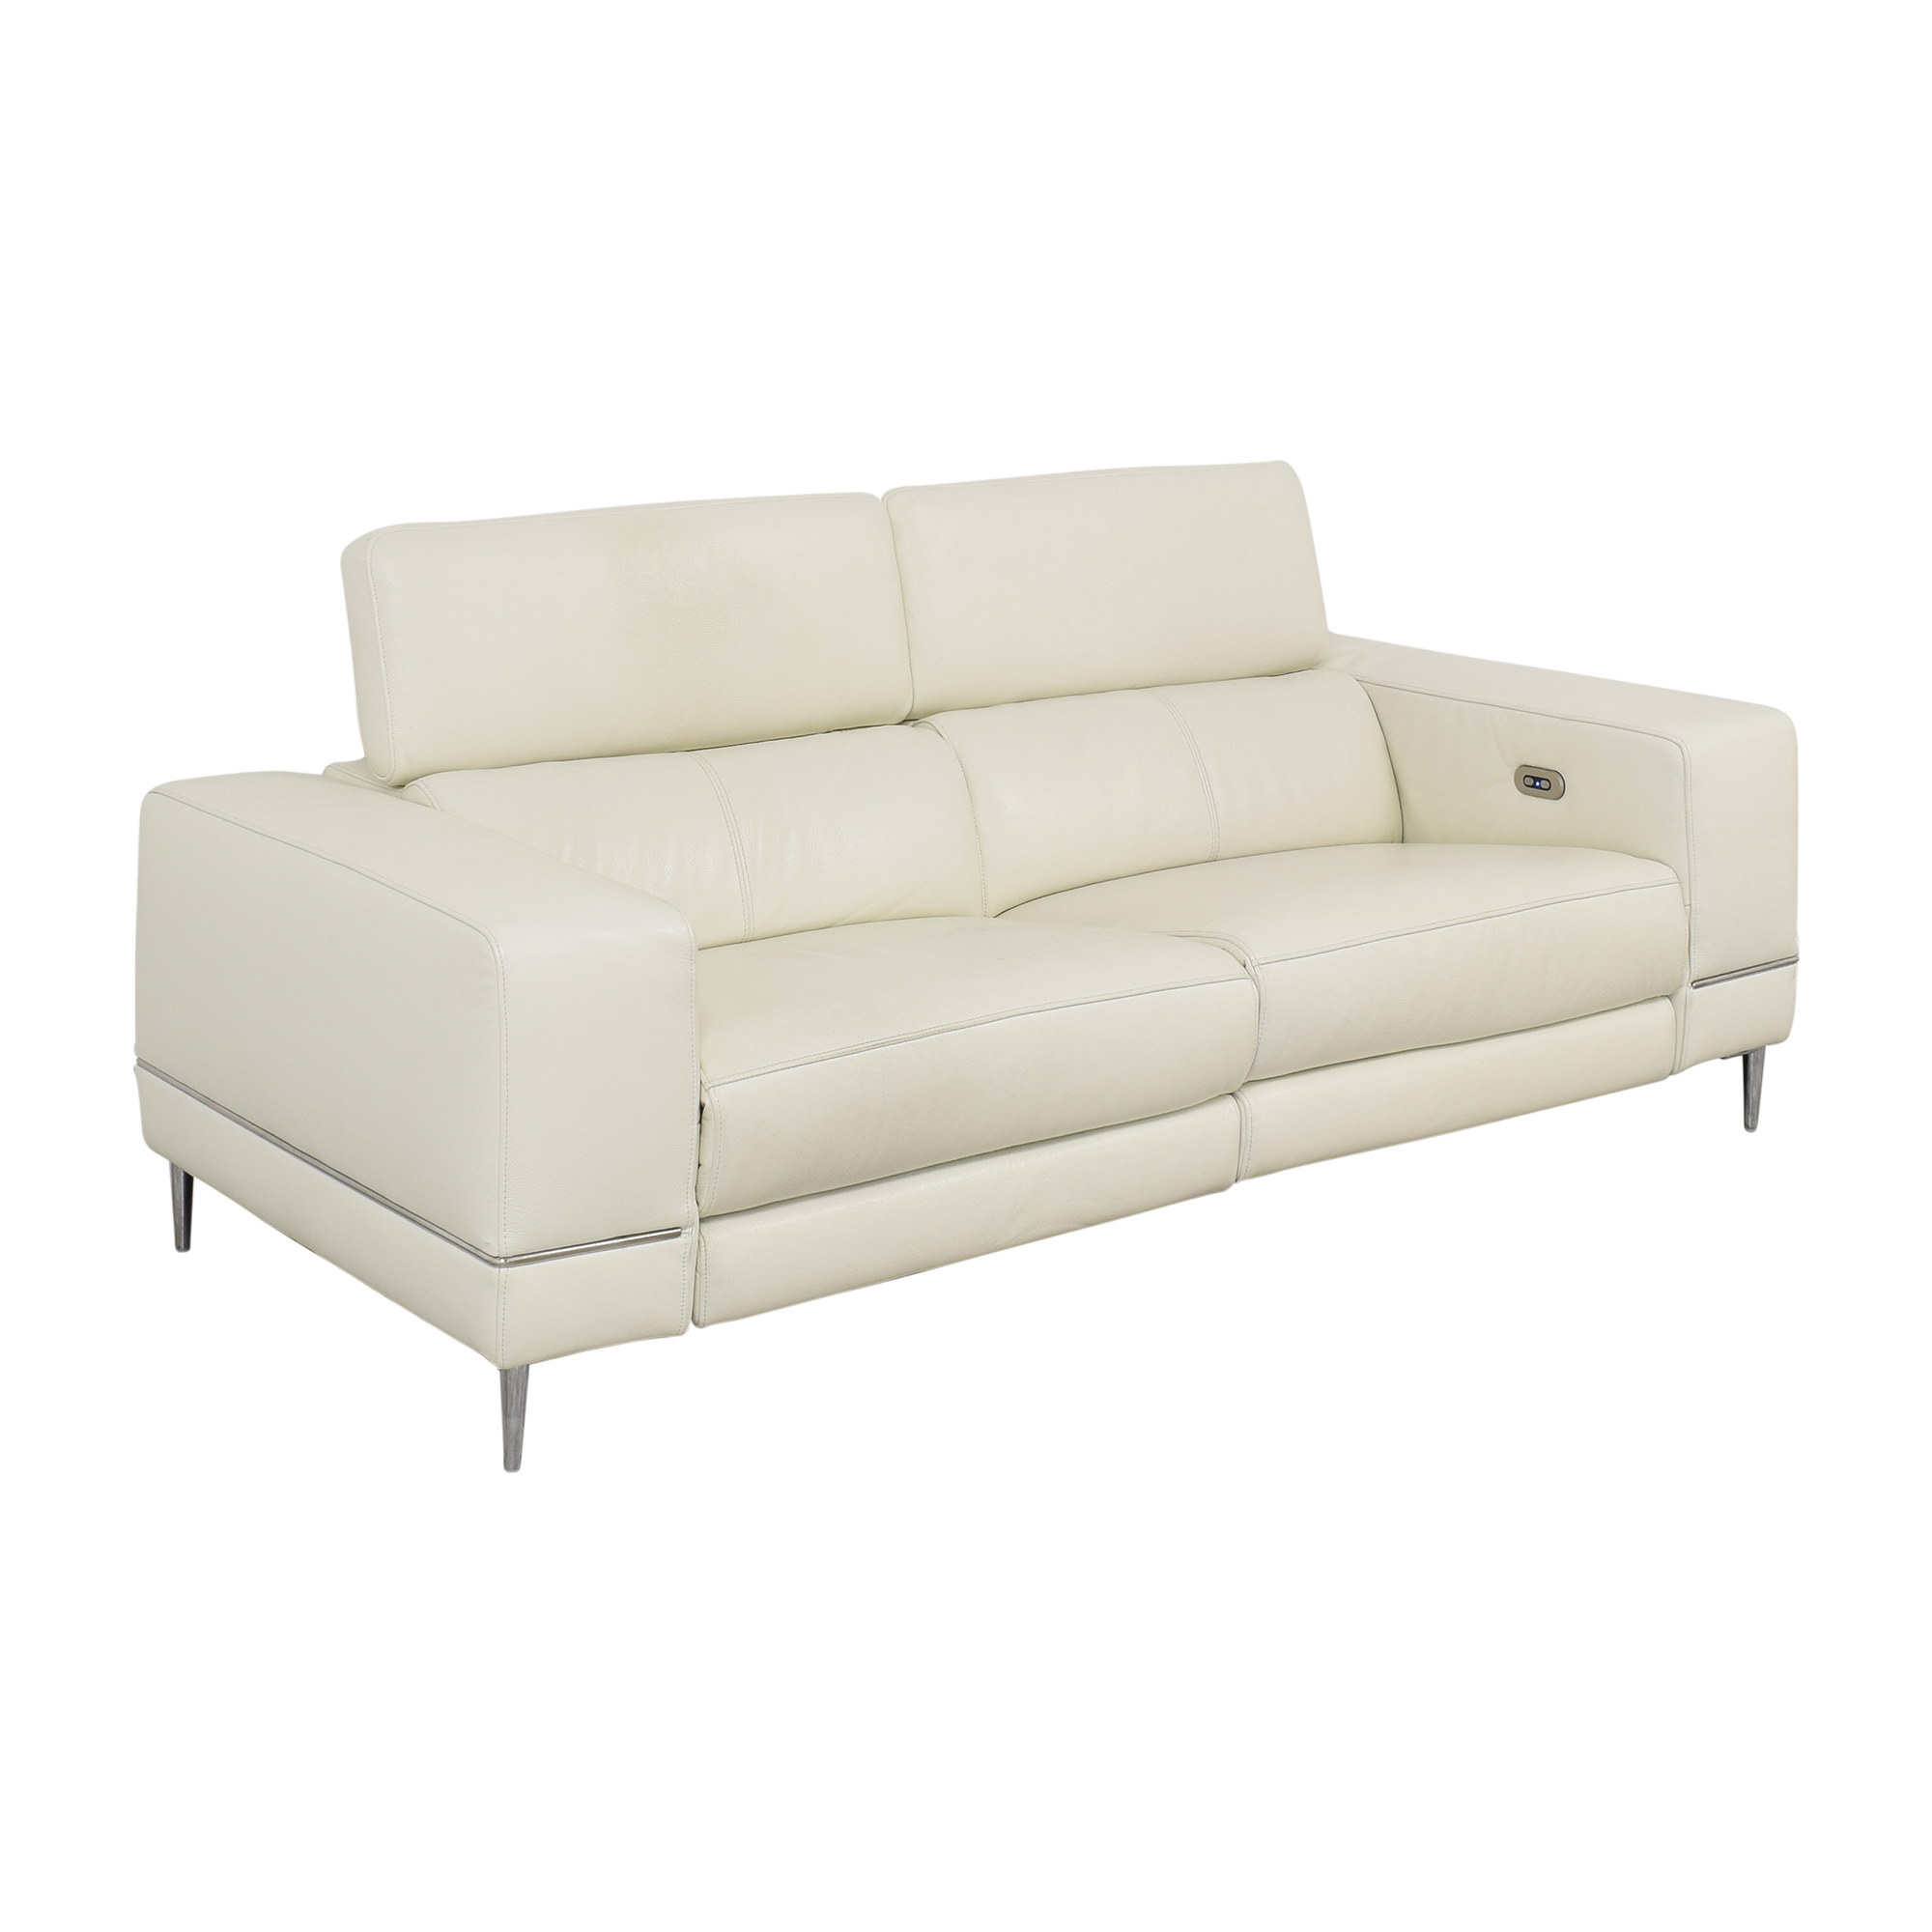 Modani Modani Bergamo Motion Sofa White for sale